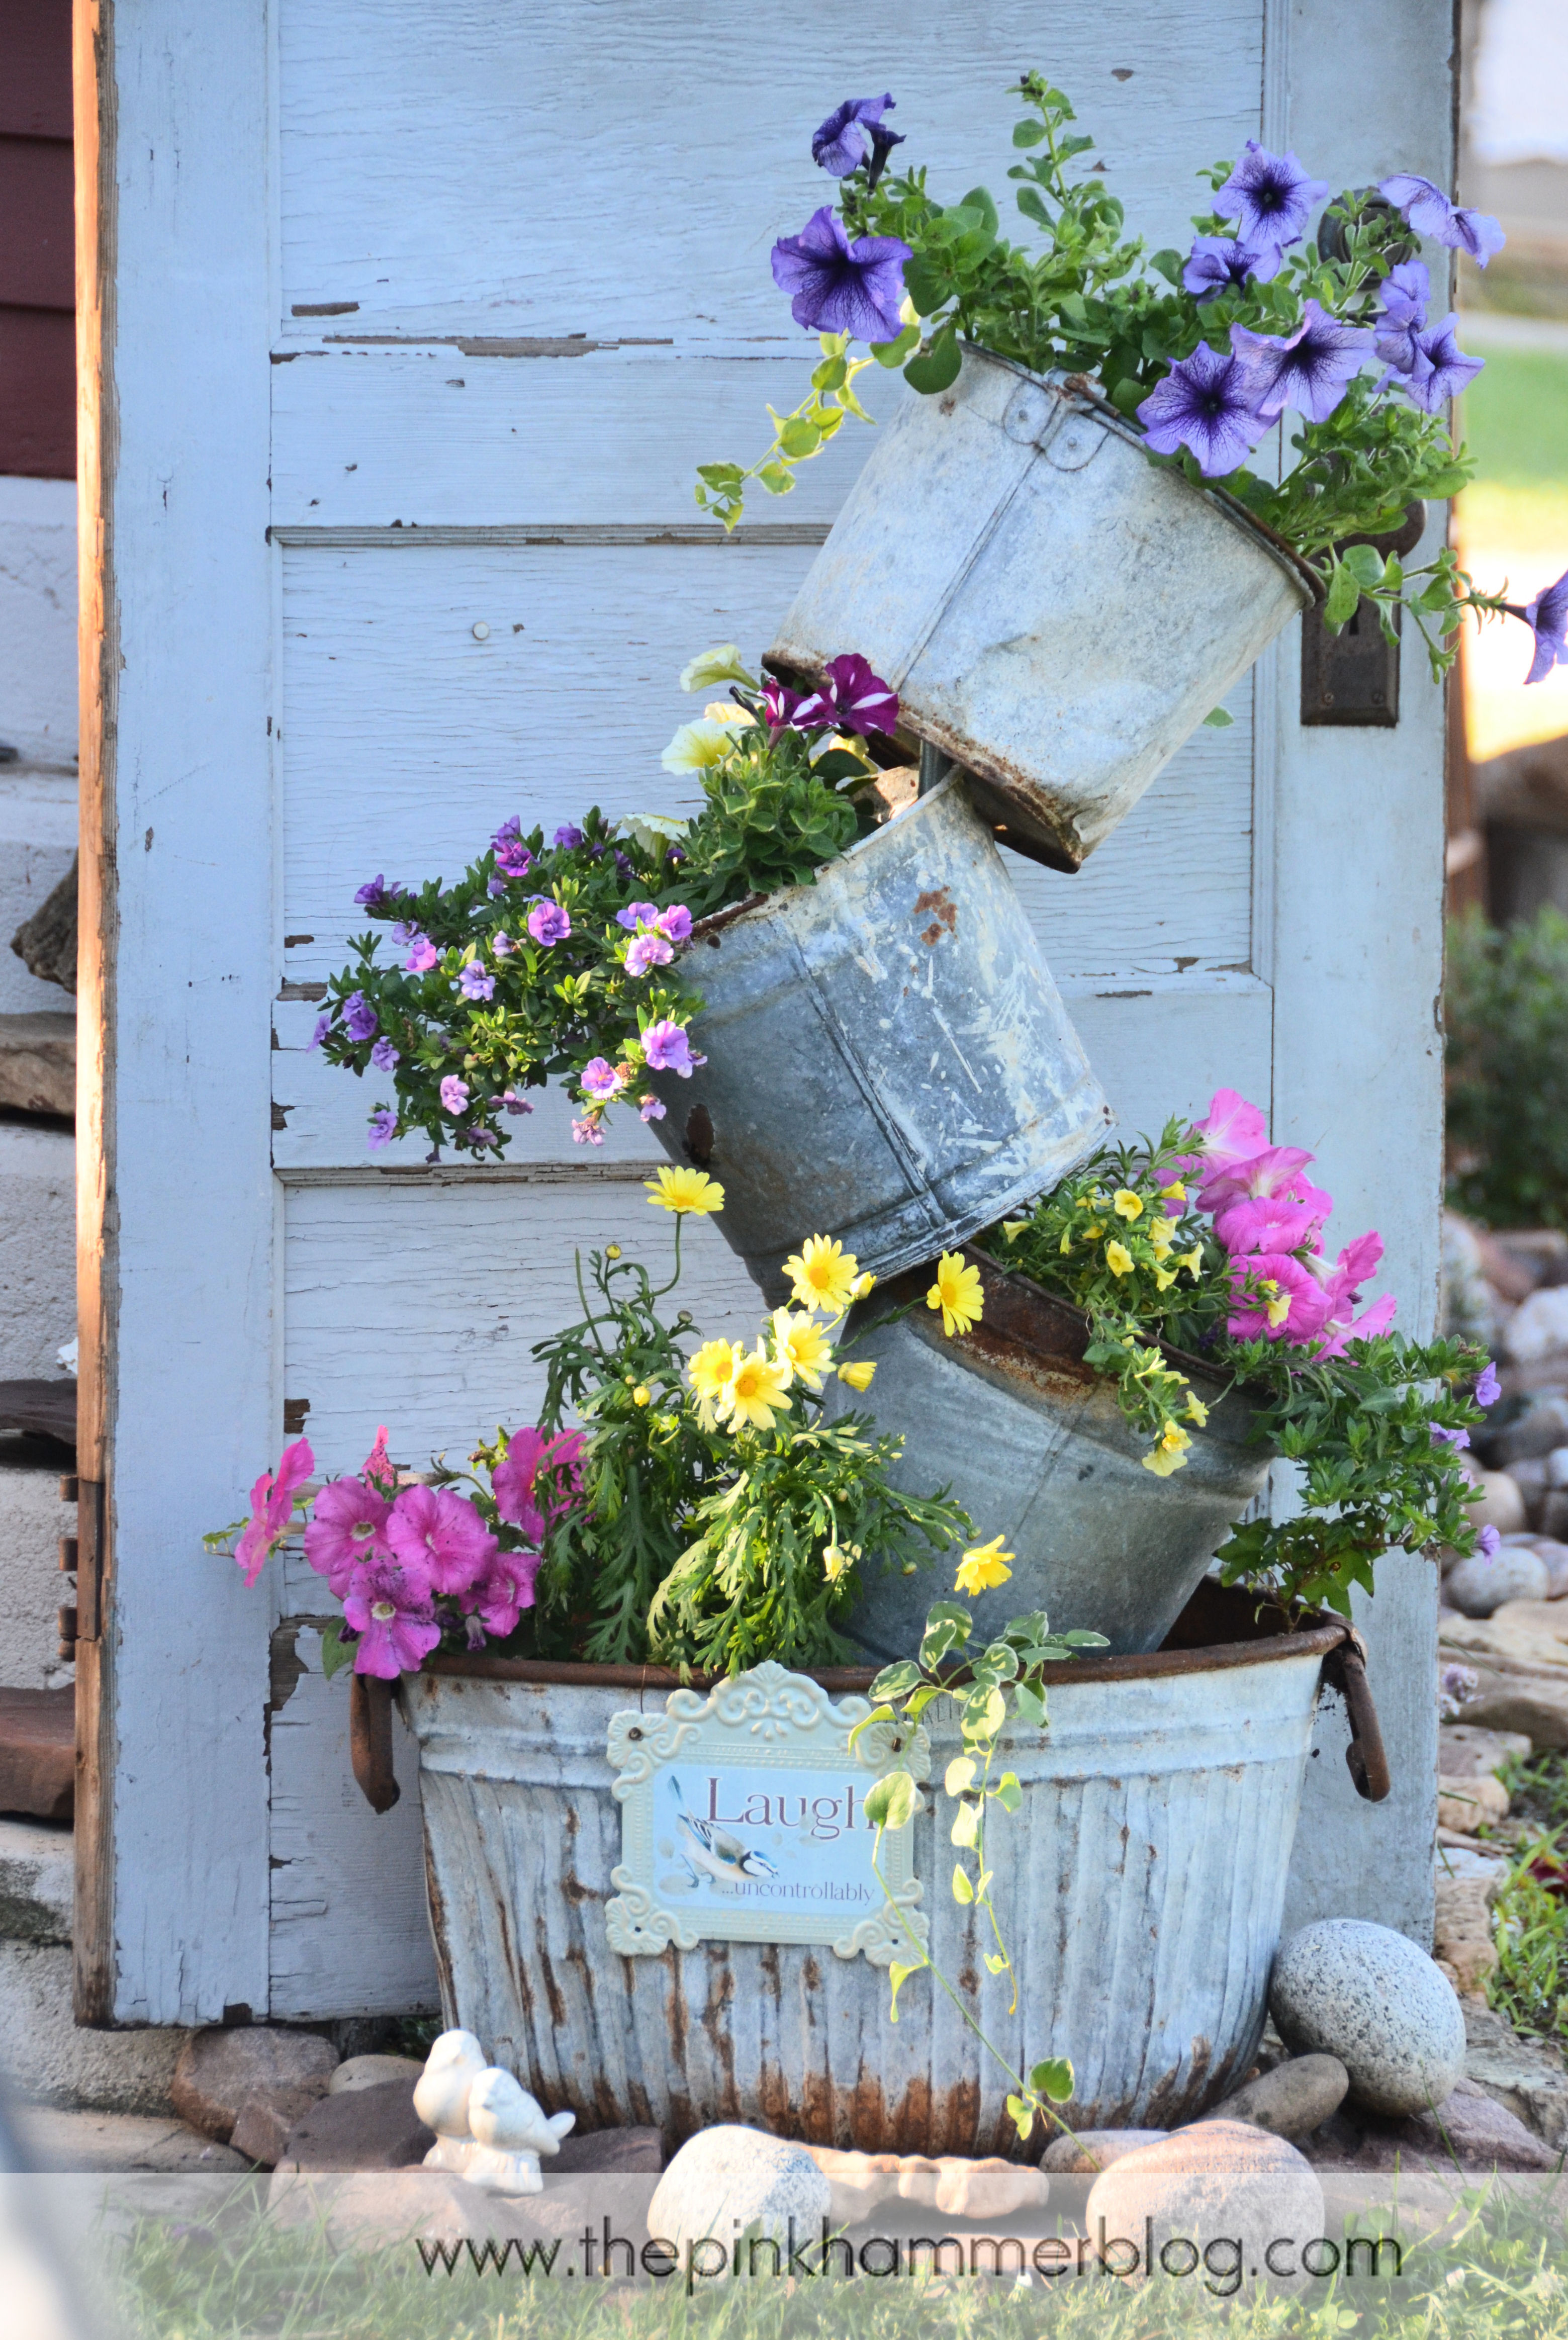 Best ideas about DIY Garden Decor . Save or Pin Primitive tipsy pot planters Now.